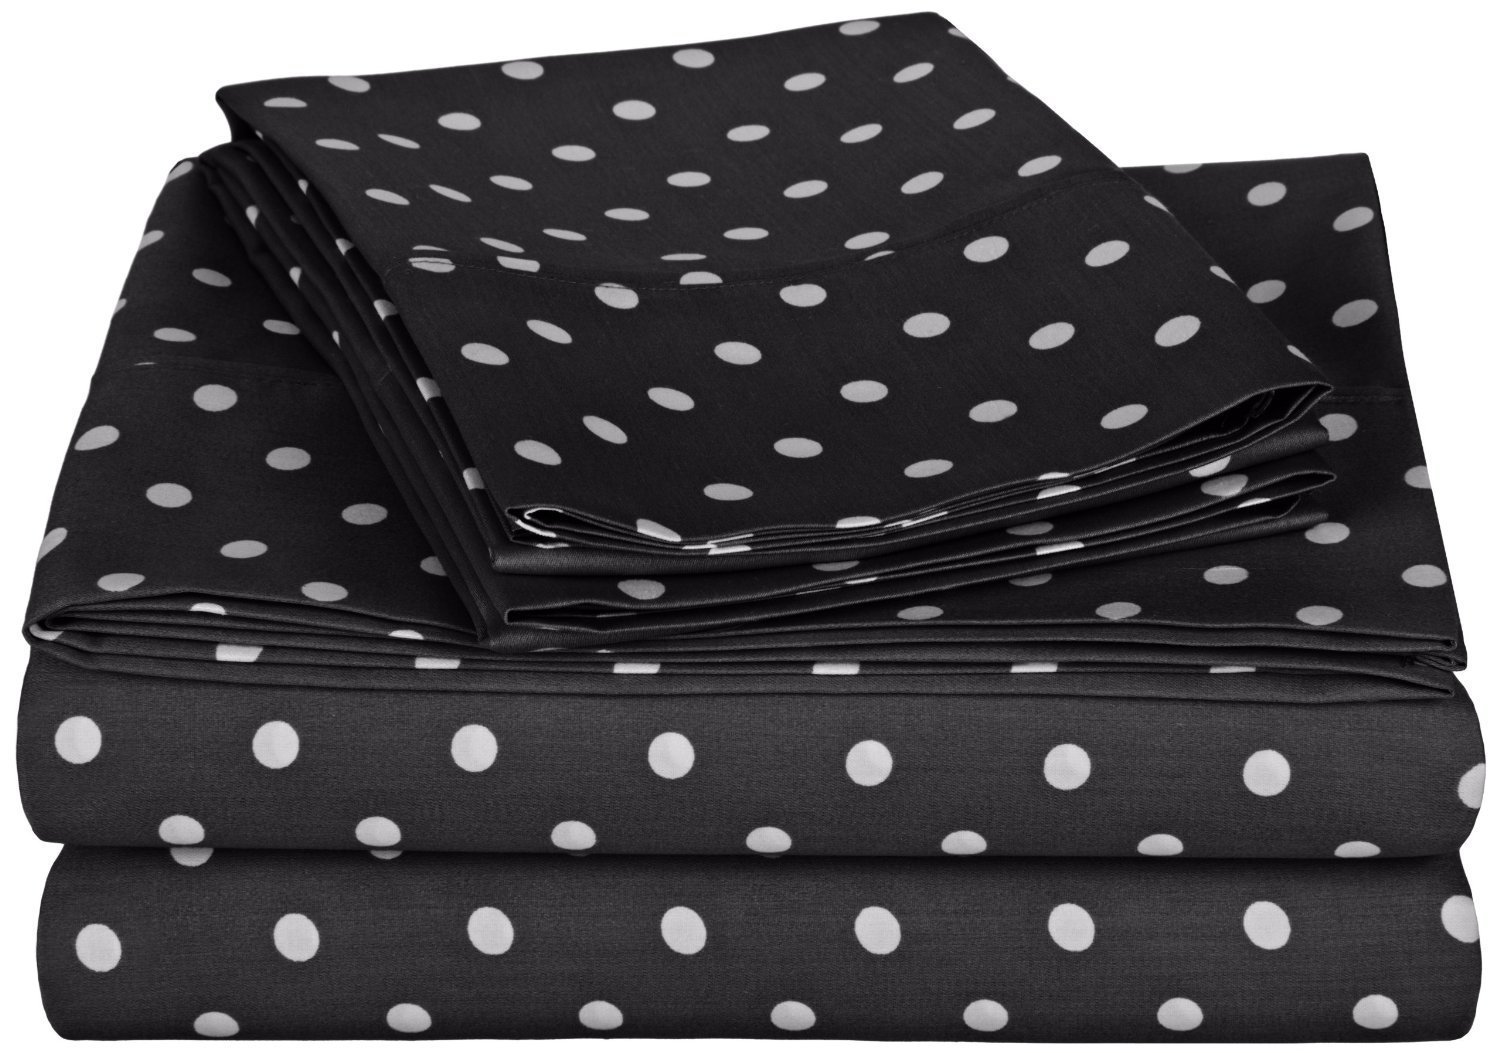 Black King Superior Polka Dot Sheet Set, 600 Thread Count Cotton Blend Bedding Sets, Soft and Wrinkle Resistant Sheets with Deep Fitting Pockets - Queen, Grey